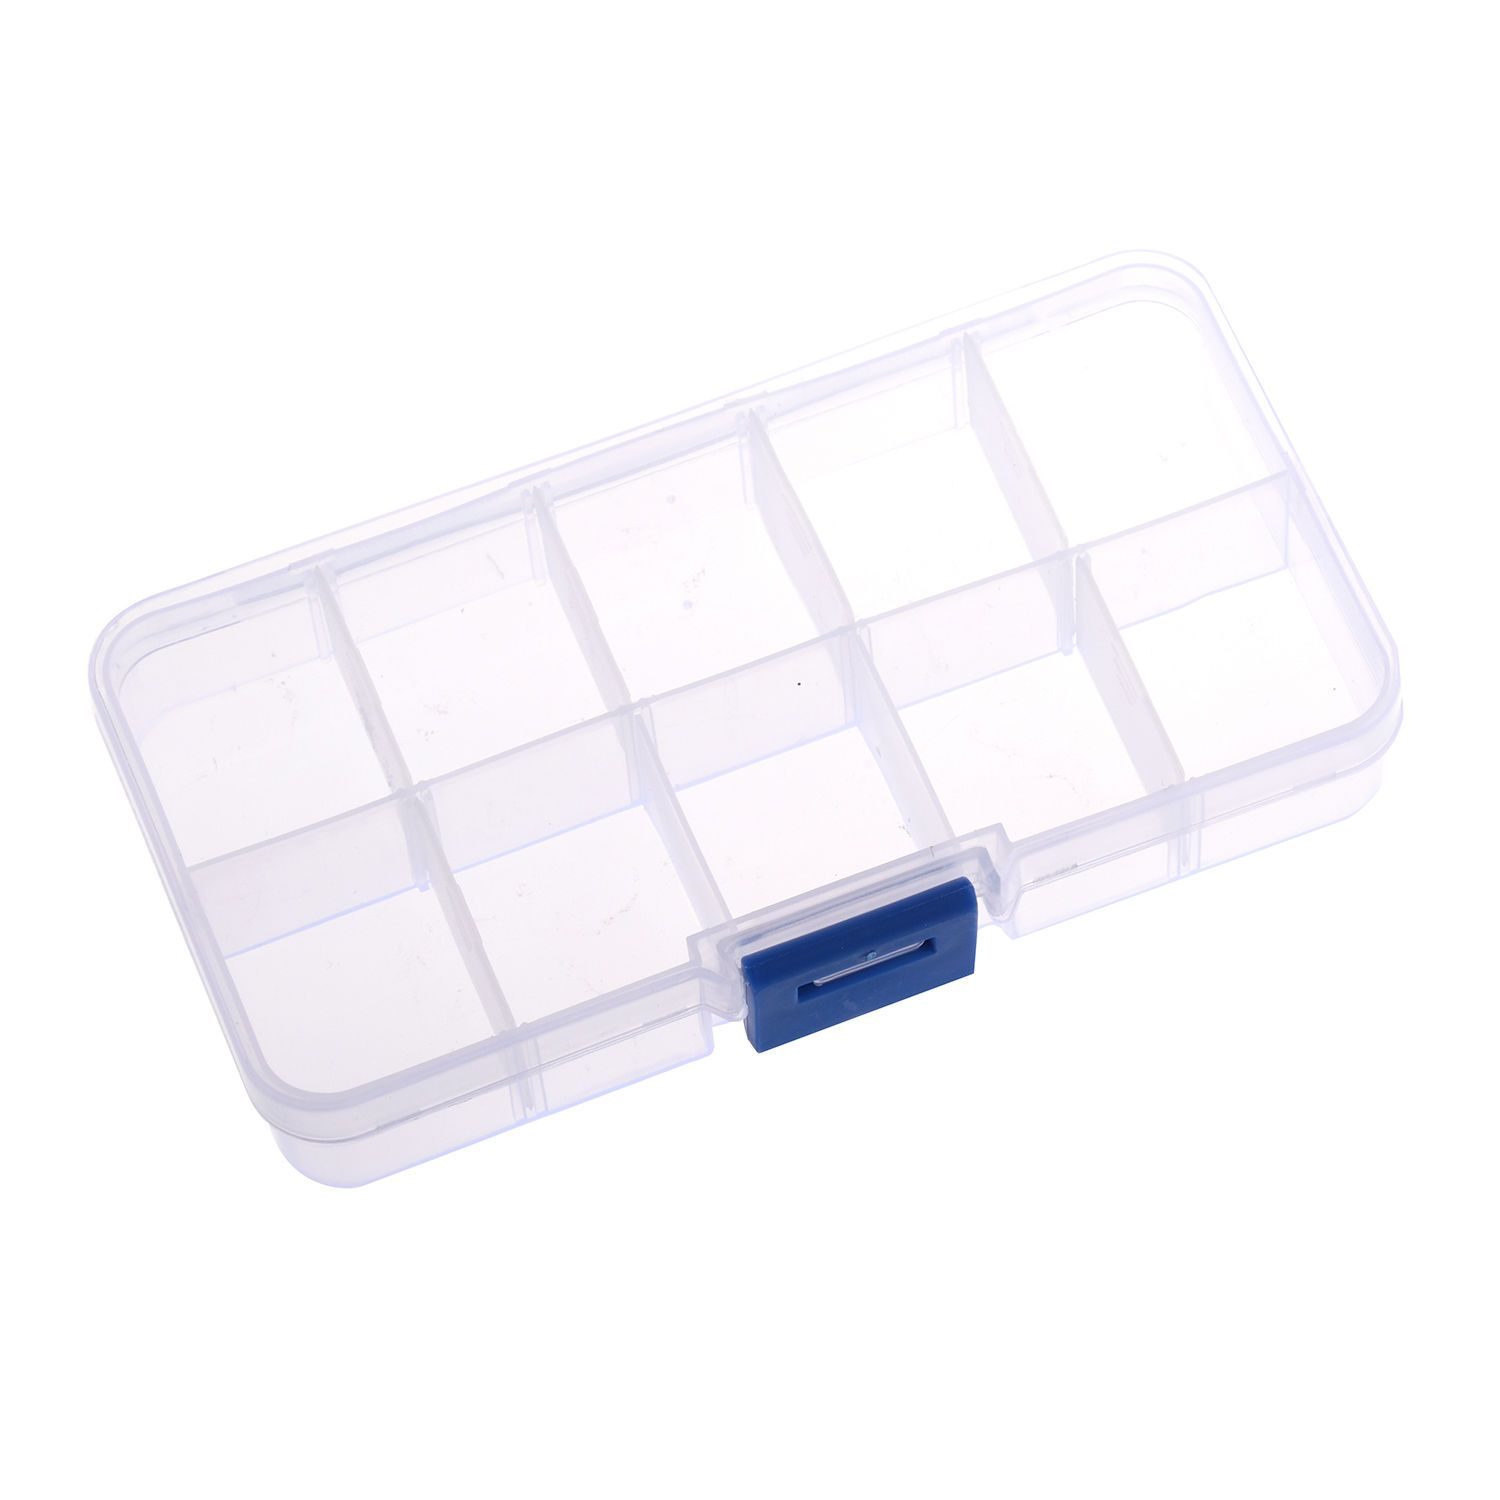 1 16 1 10 Adjustable Clearly Compartment Crafts Plastic Storage Stoccase Box E8p4 Ebay Hom Plastic Box Storage Plastic Container Storage Plastic Storage